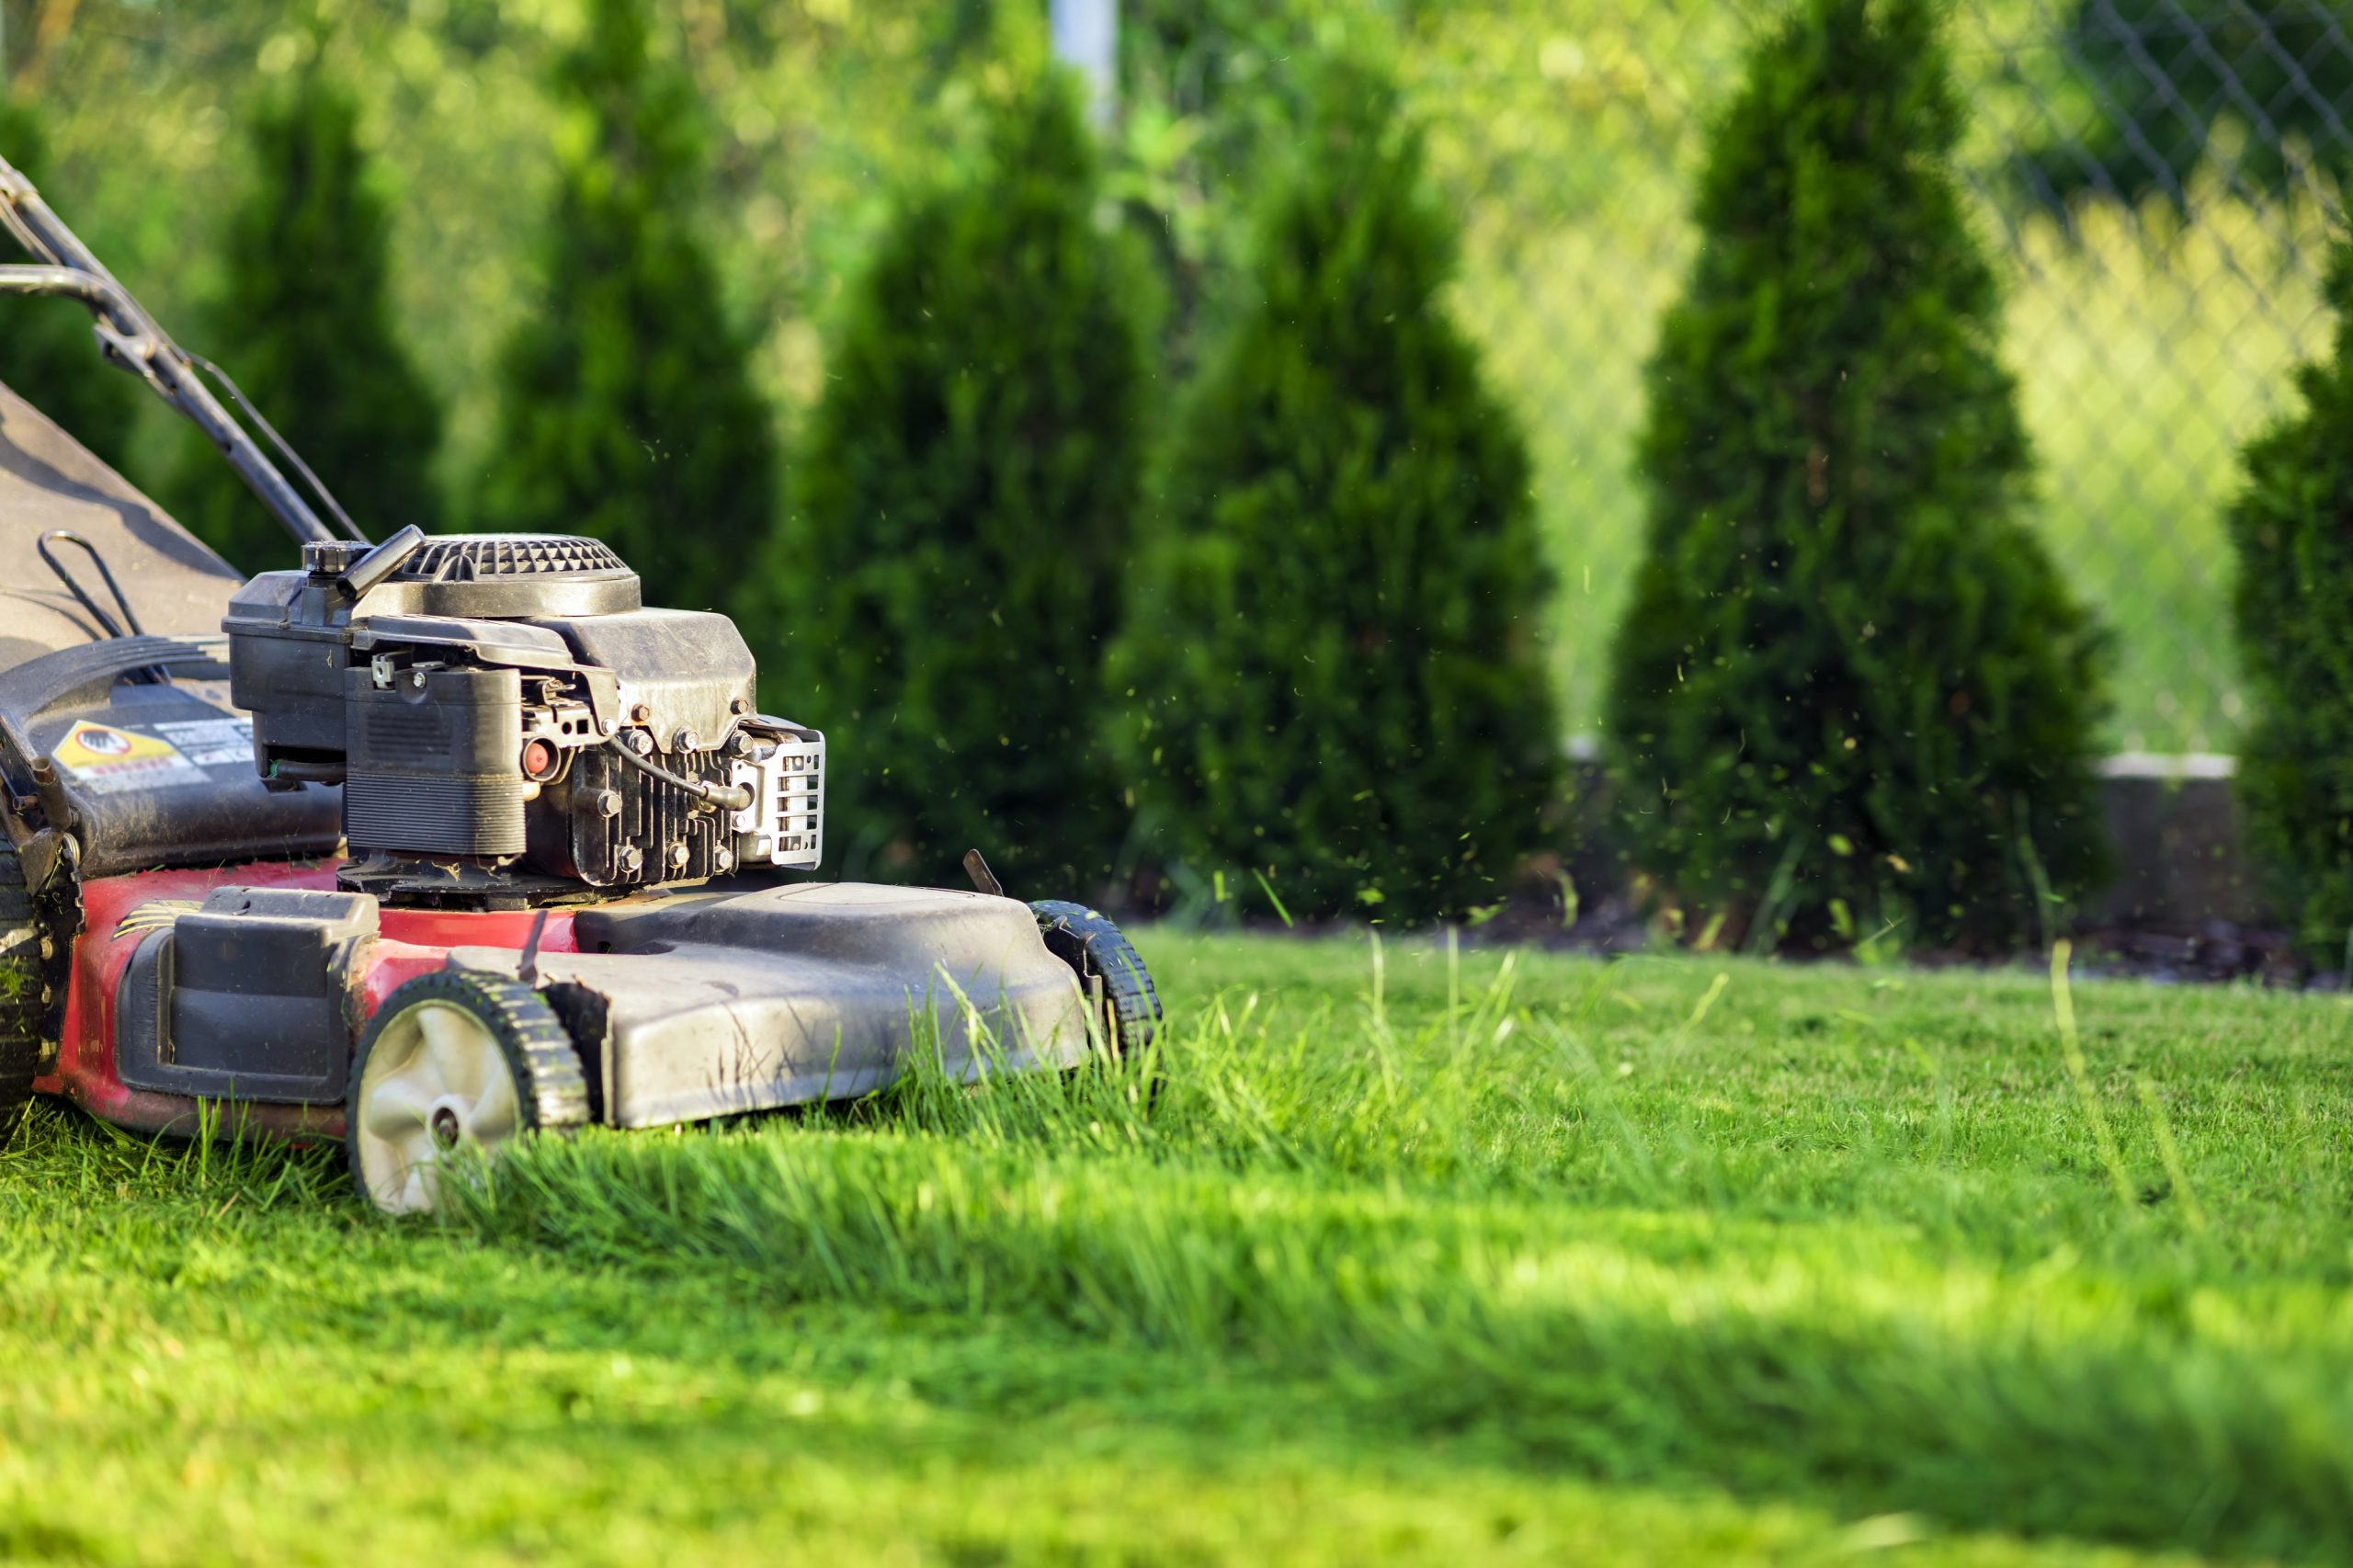 Spring Lawn Care: Getting Ready to Enjoy Your Yard